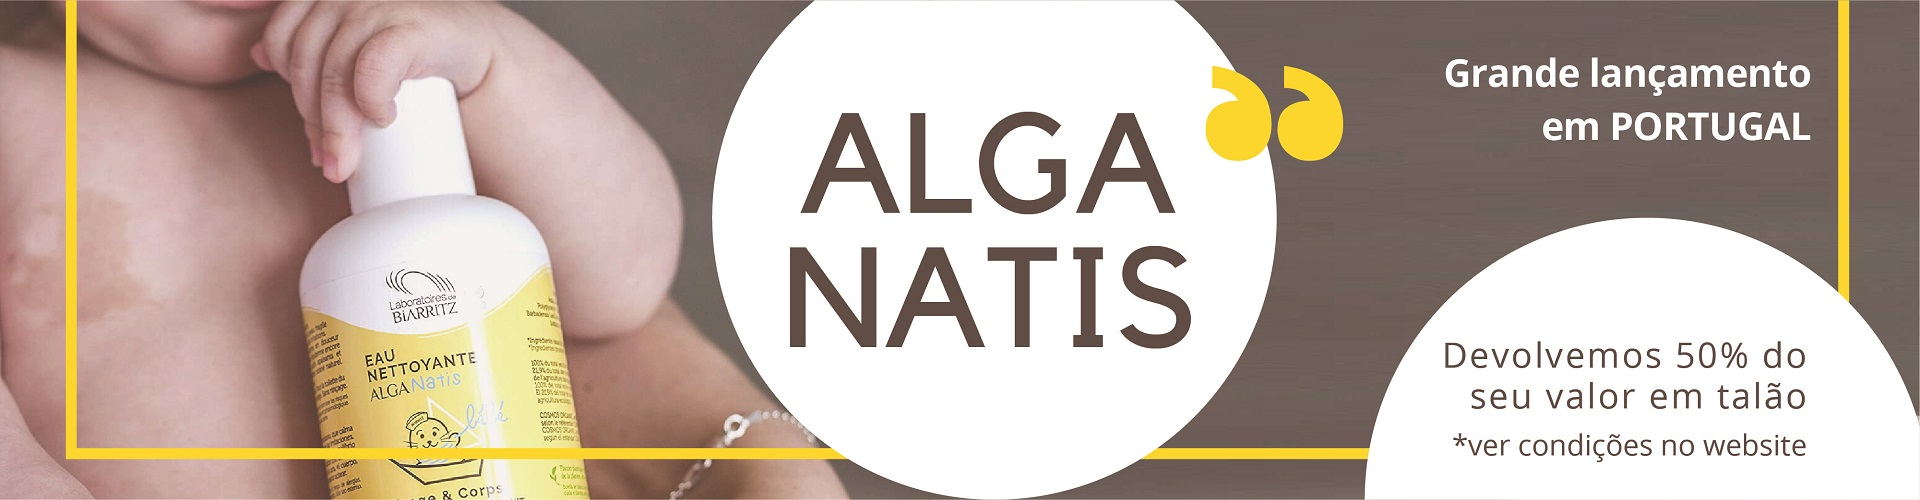 Slide Alga Natis